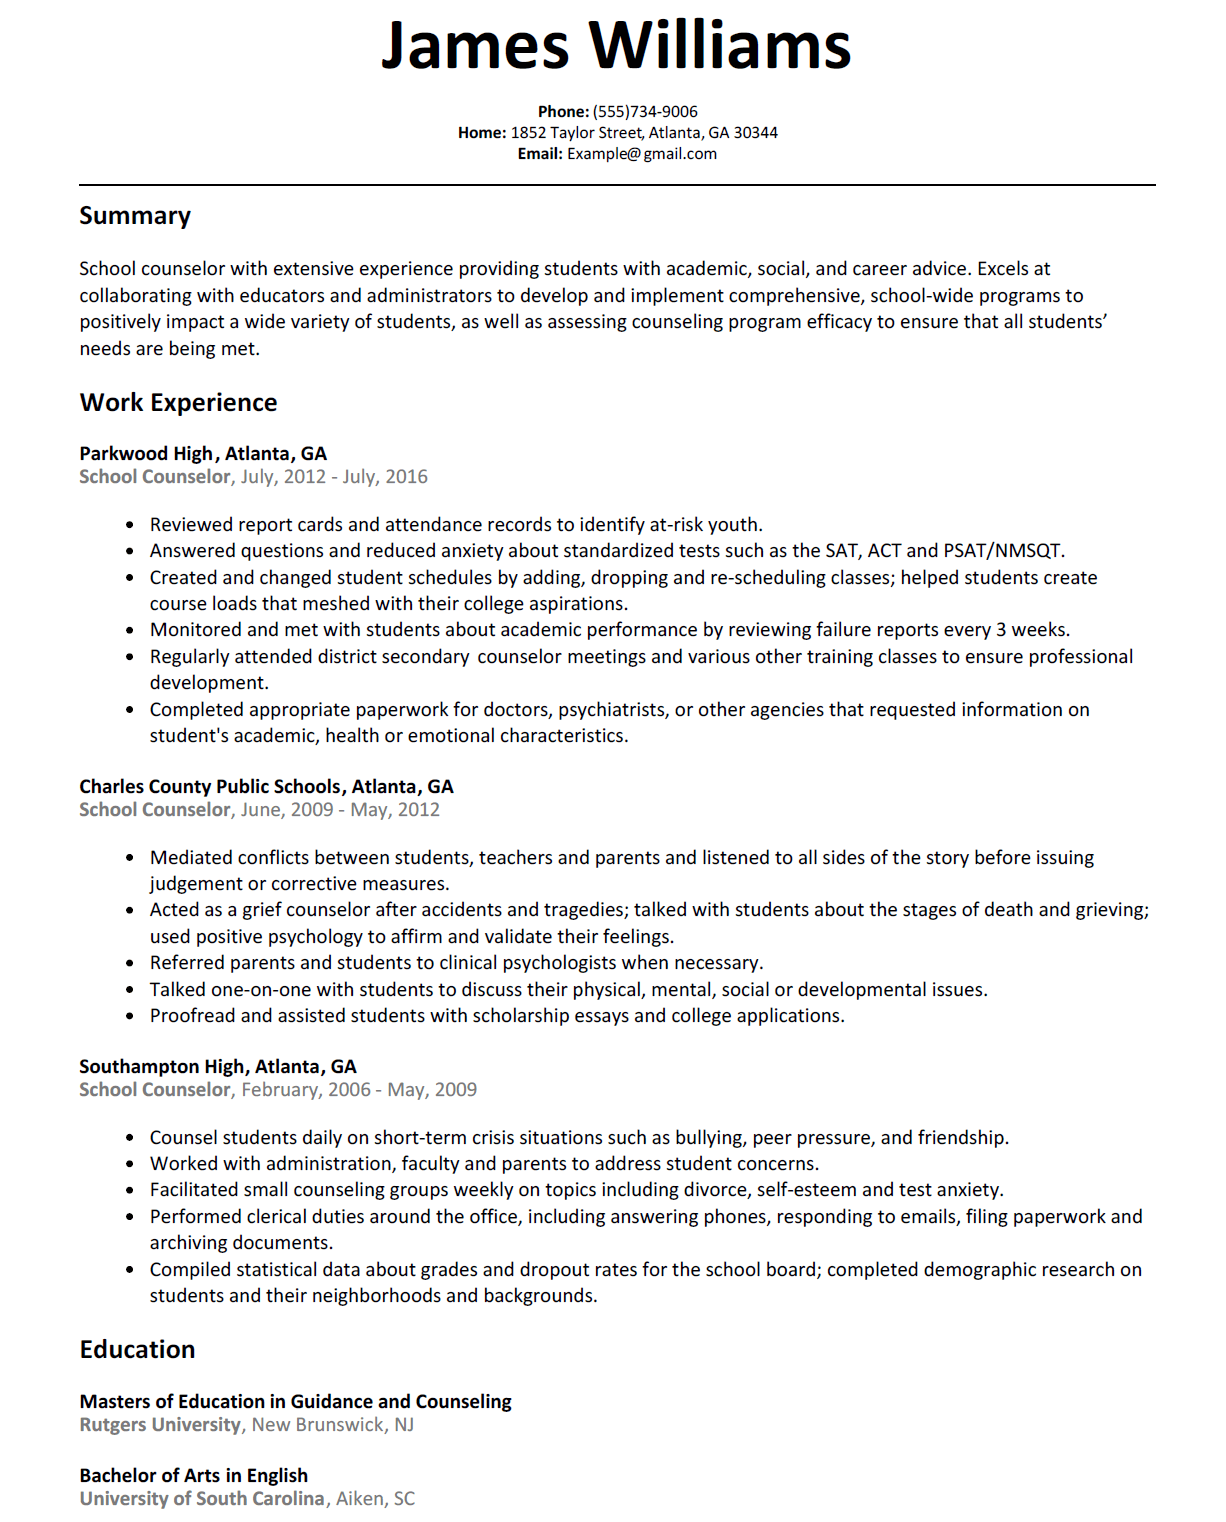 School Counselor Resume (With images) School guidance